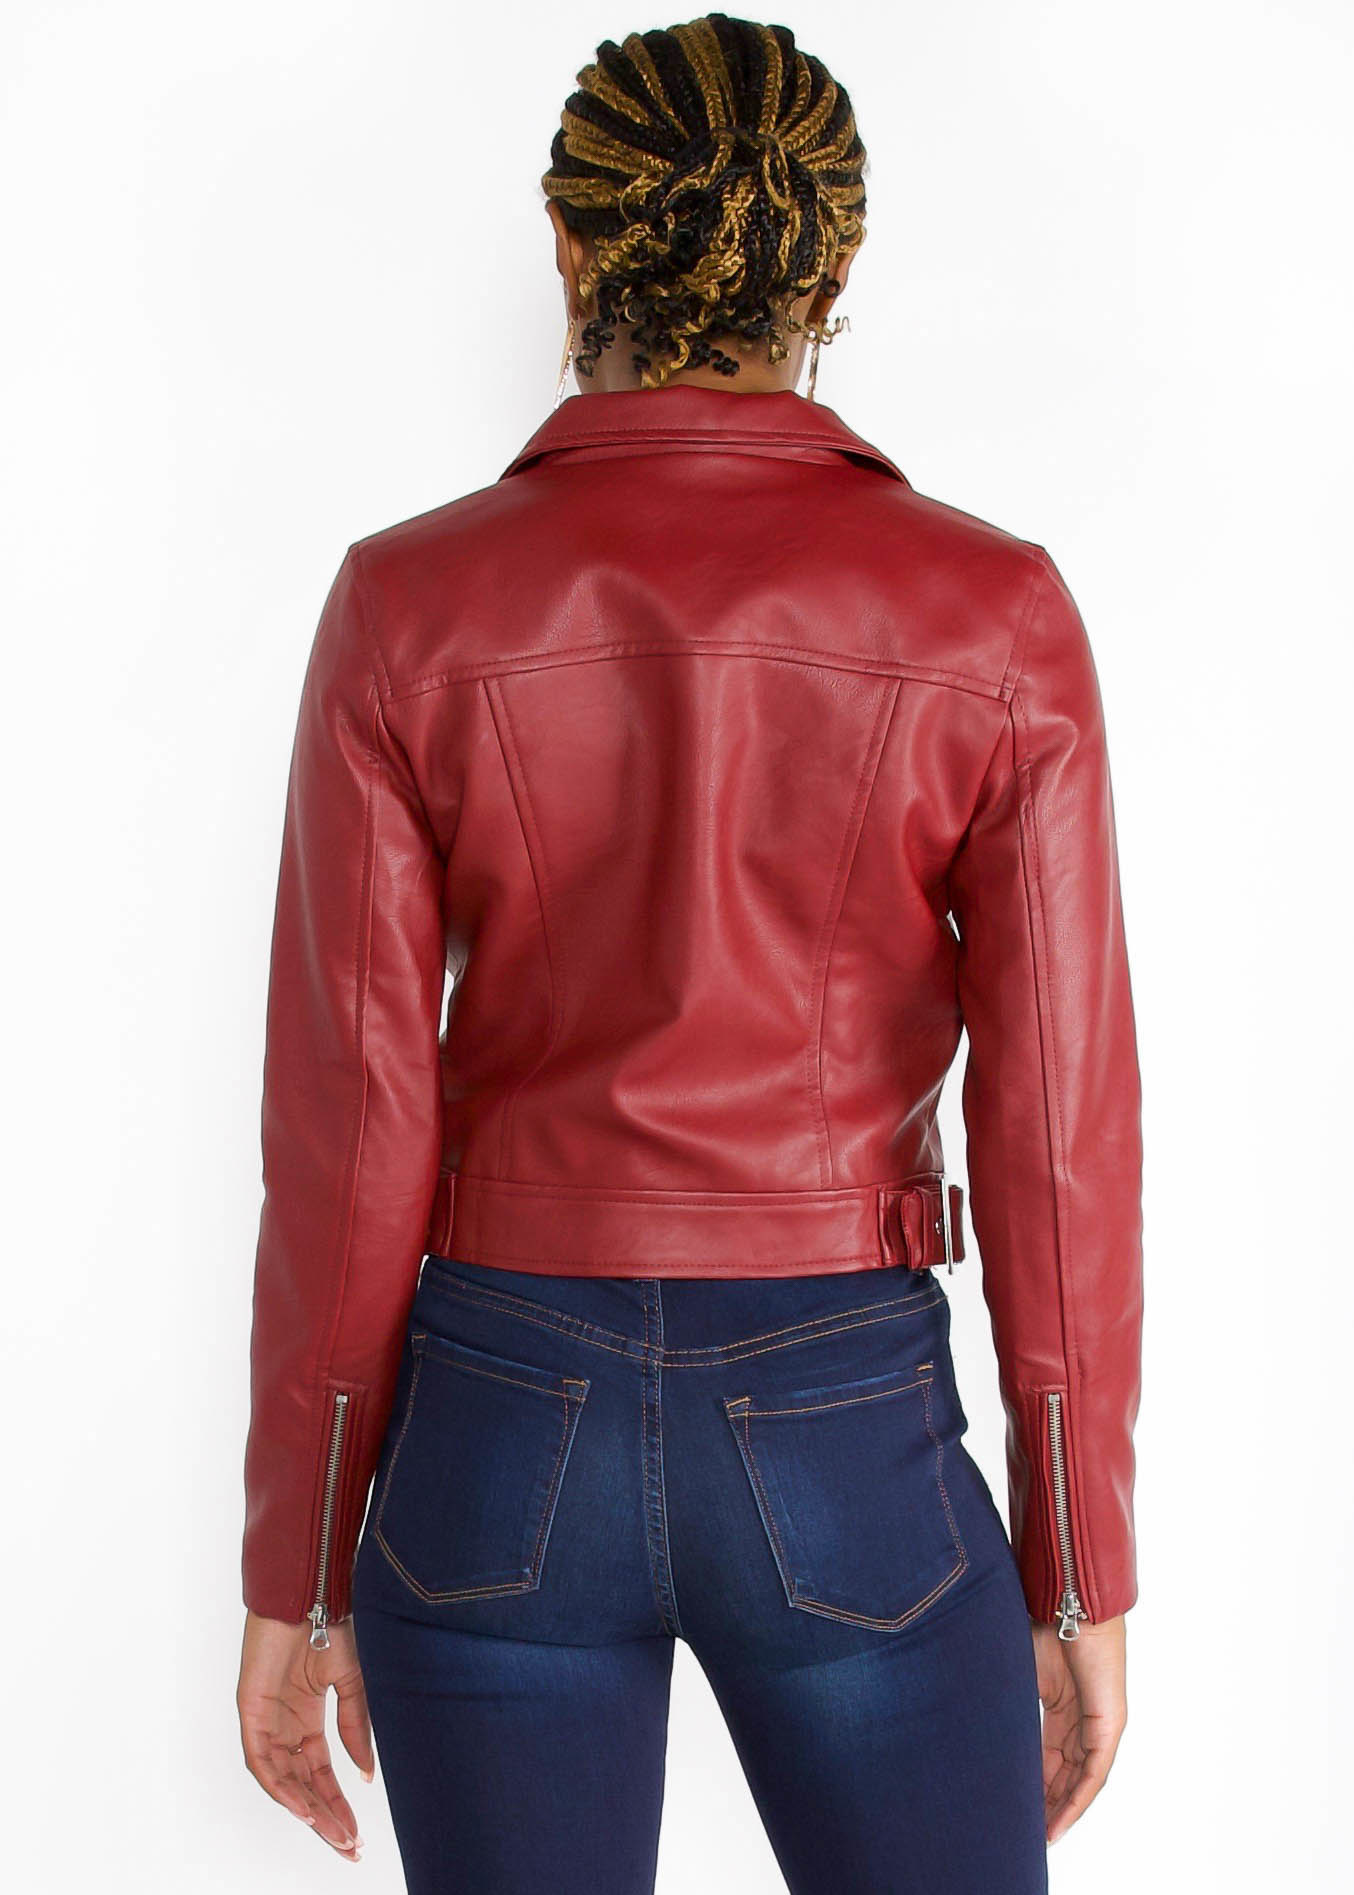 LEXI LEATHER JACKET - BURGUNDY